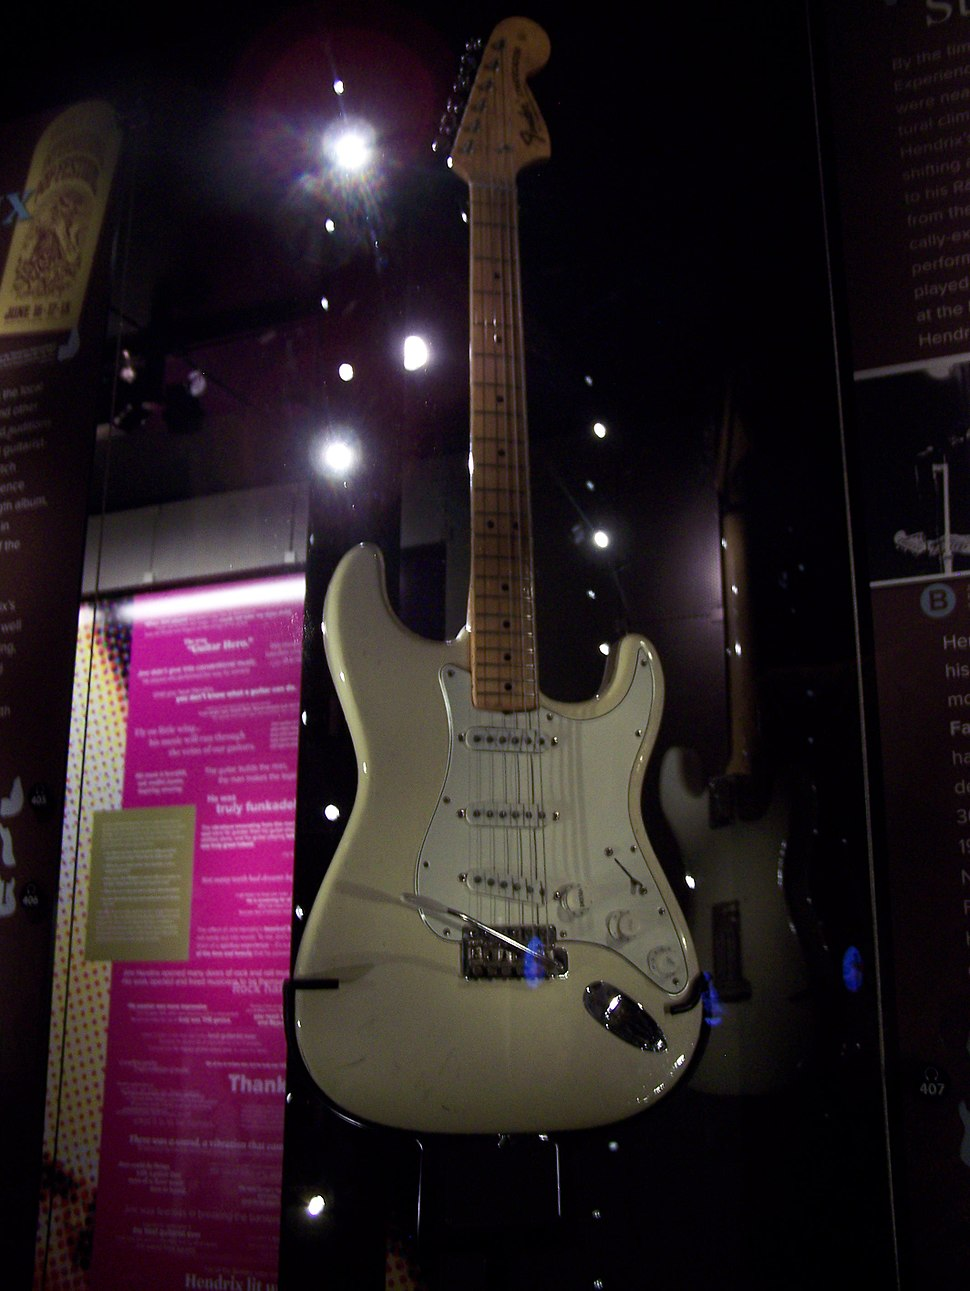 A color photograph of a white Fender Stratocaster guitar